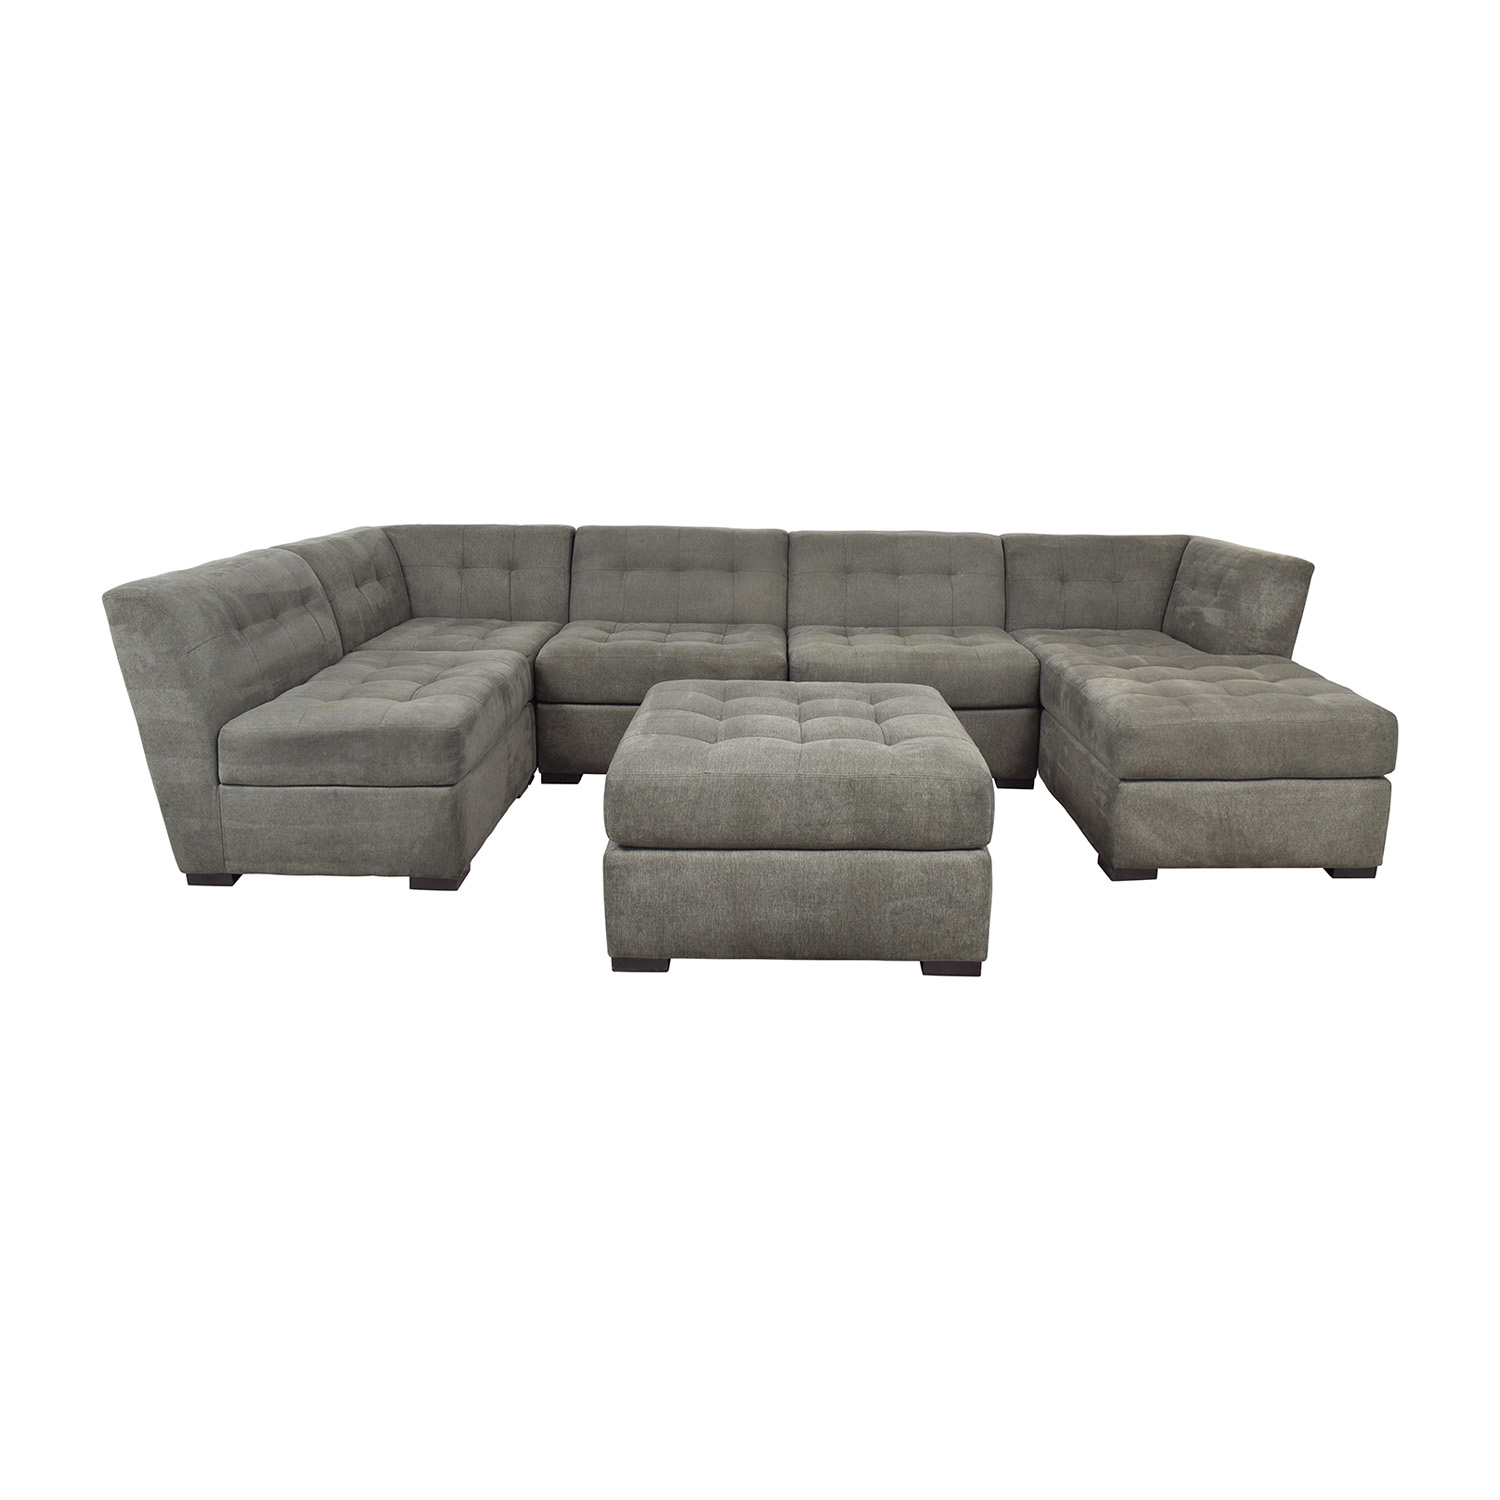 buy Macy's Roxanne II Modular Sectional Sofa with Chaise & Ottoman Macy's Sectionals